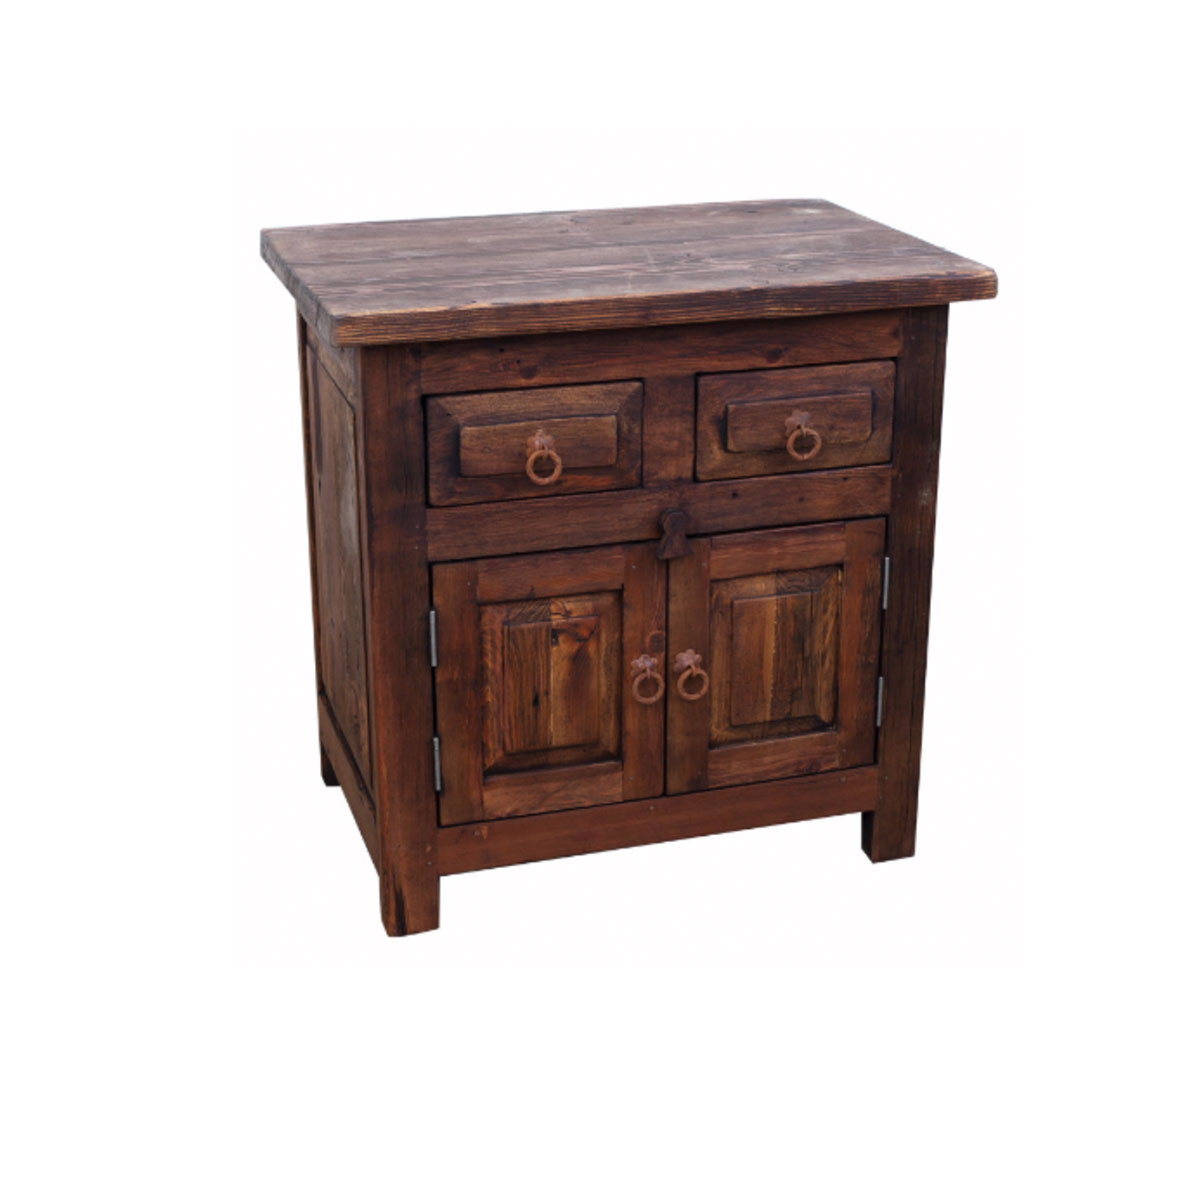 Buy 2 drawer rustic bathroom vanity online perfect for a bathroom with limited space Wooden bathroom furniture cabinets